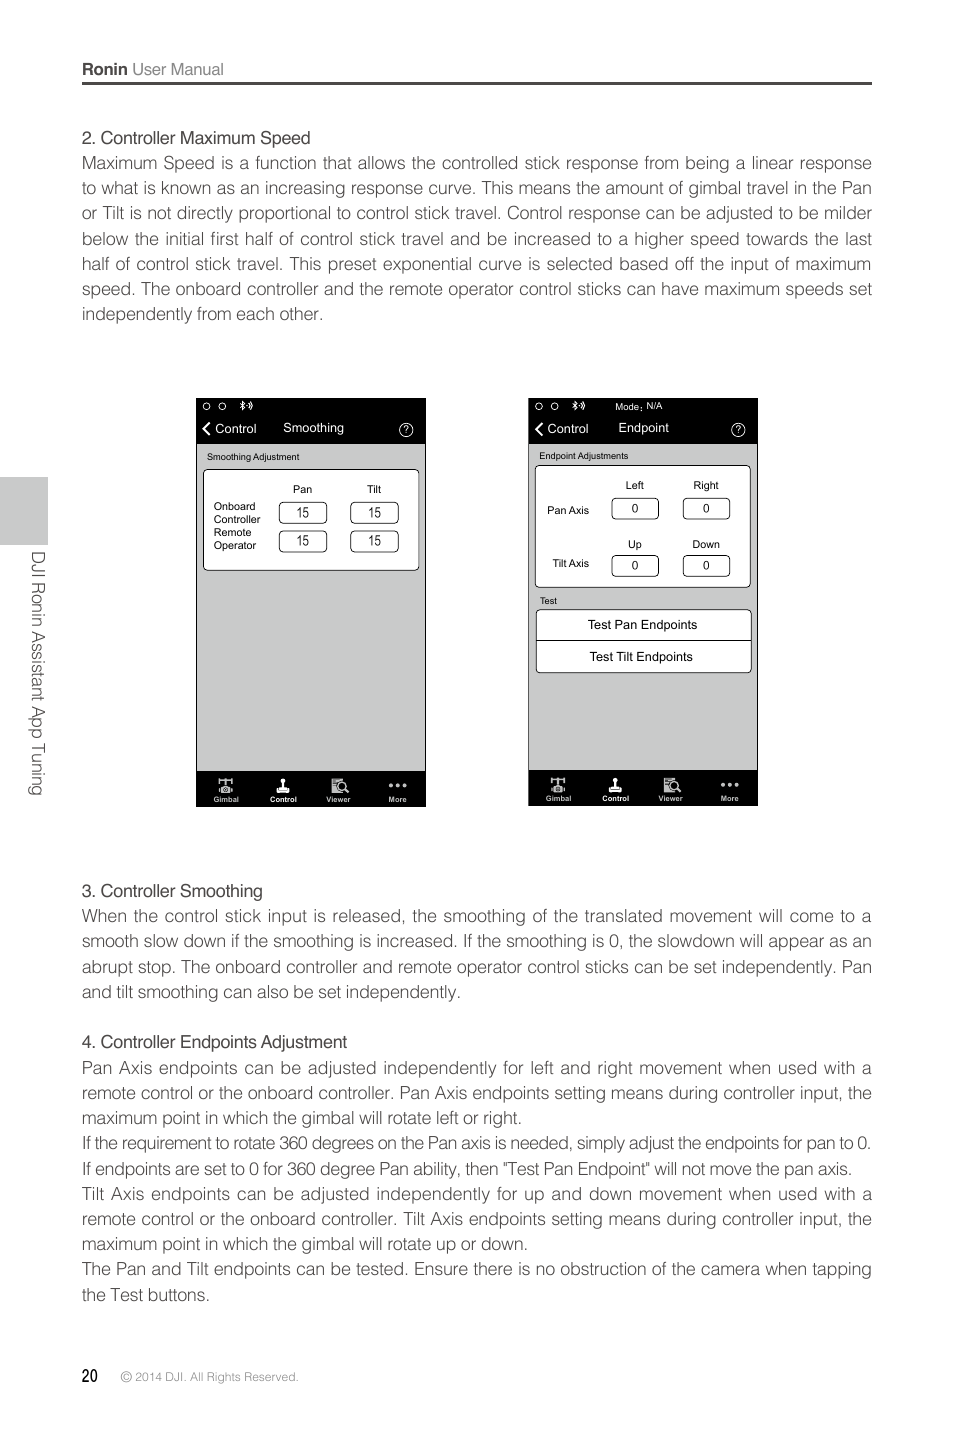 Dji ronin assistant app tuning | DJI Ronin User Manual | Page 20